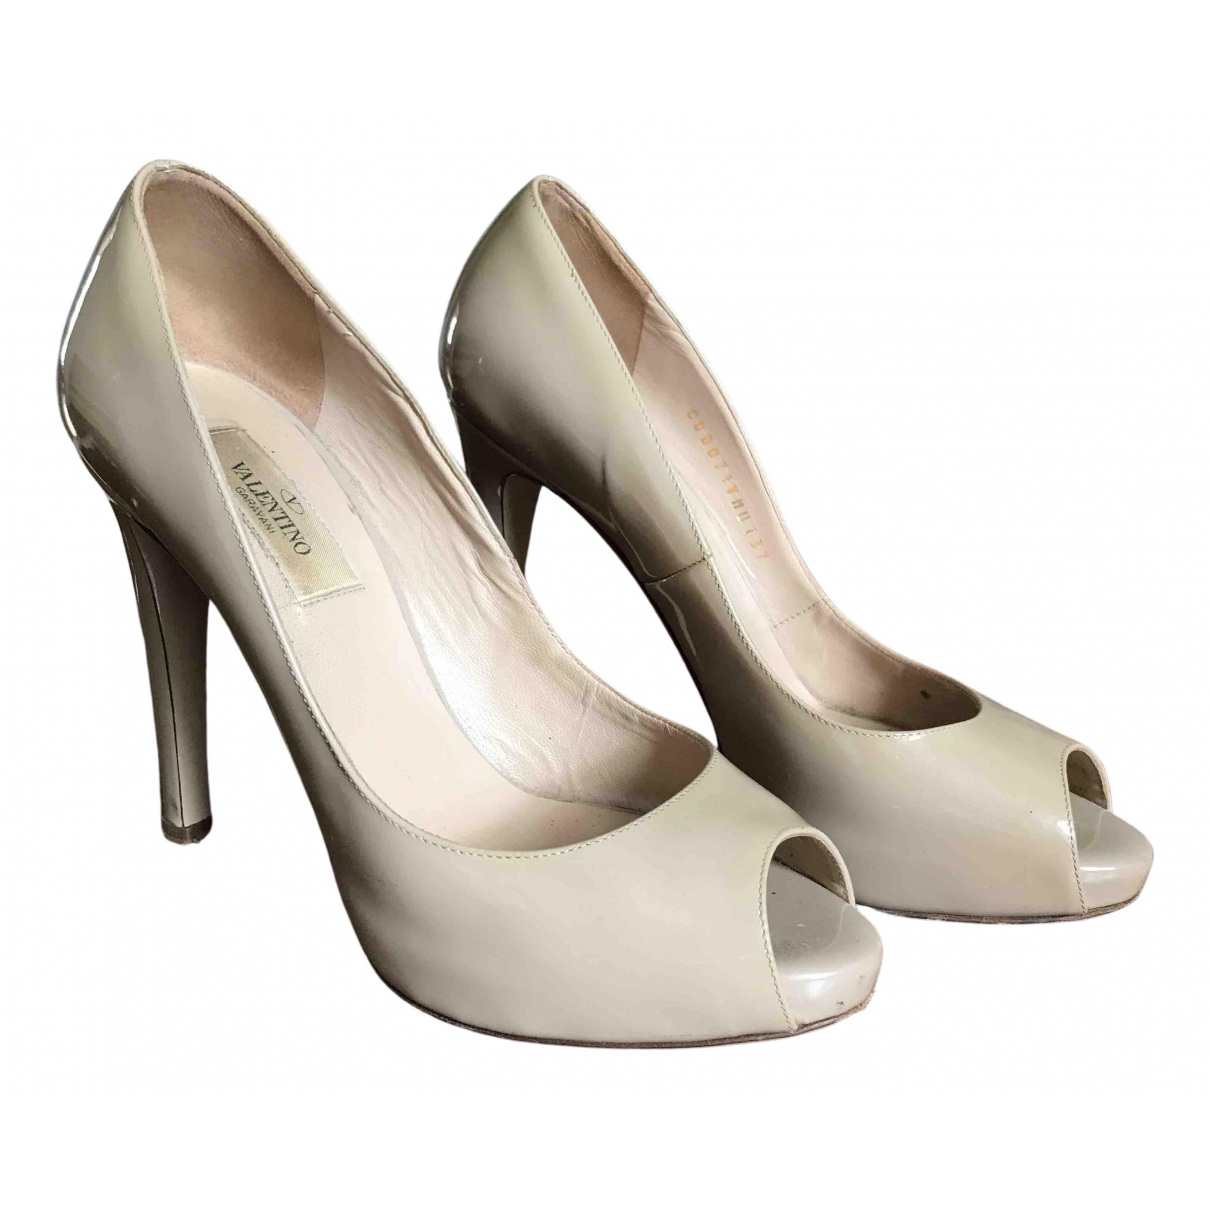 Valentino Garavani N Beige Patent leather Heels for Women 37 EU